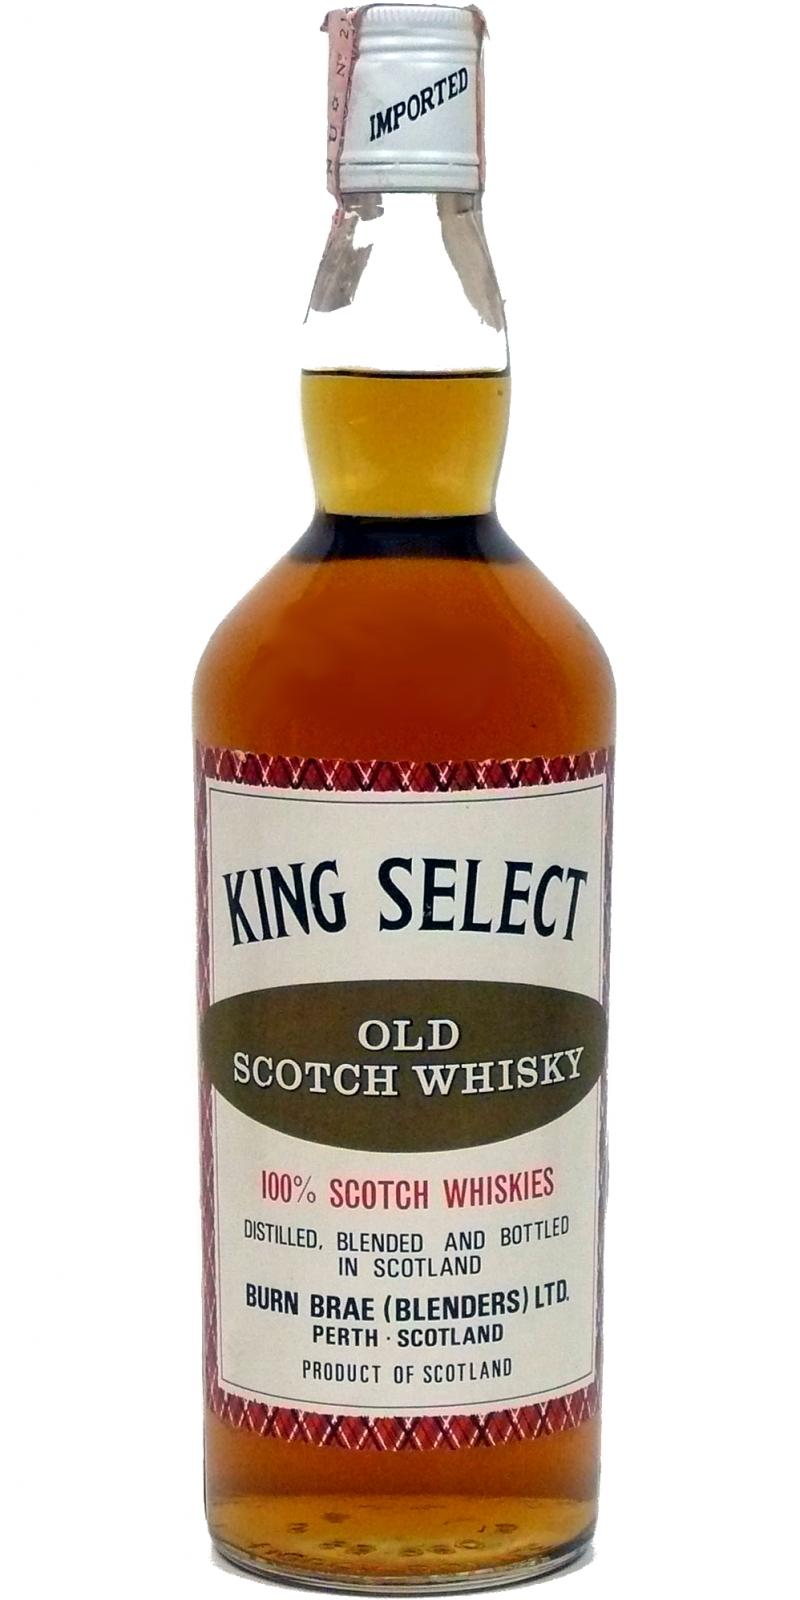 King Select Old Scotch Whisky